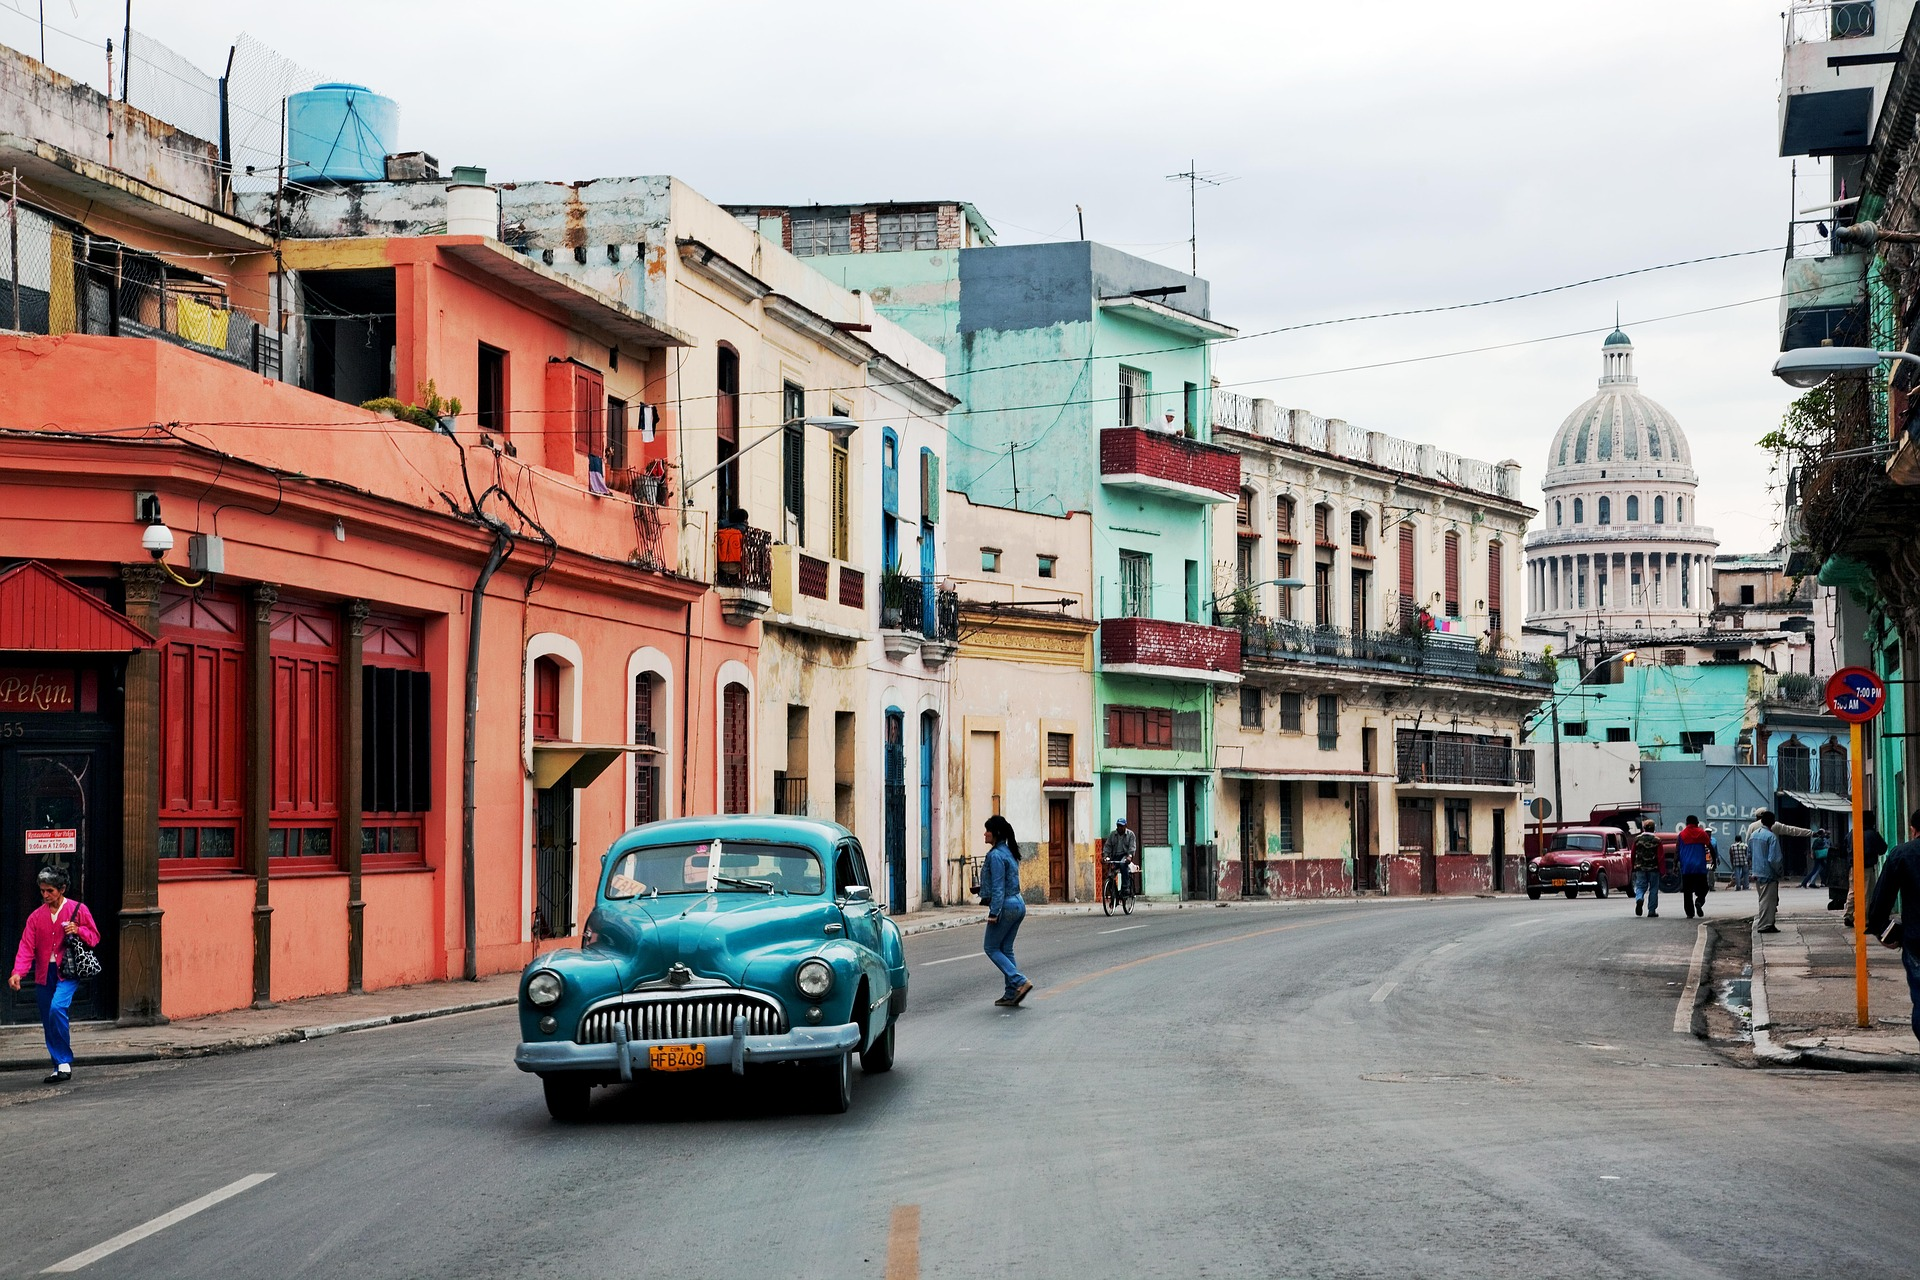 Private detectives and investigators in Cuba